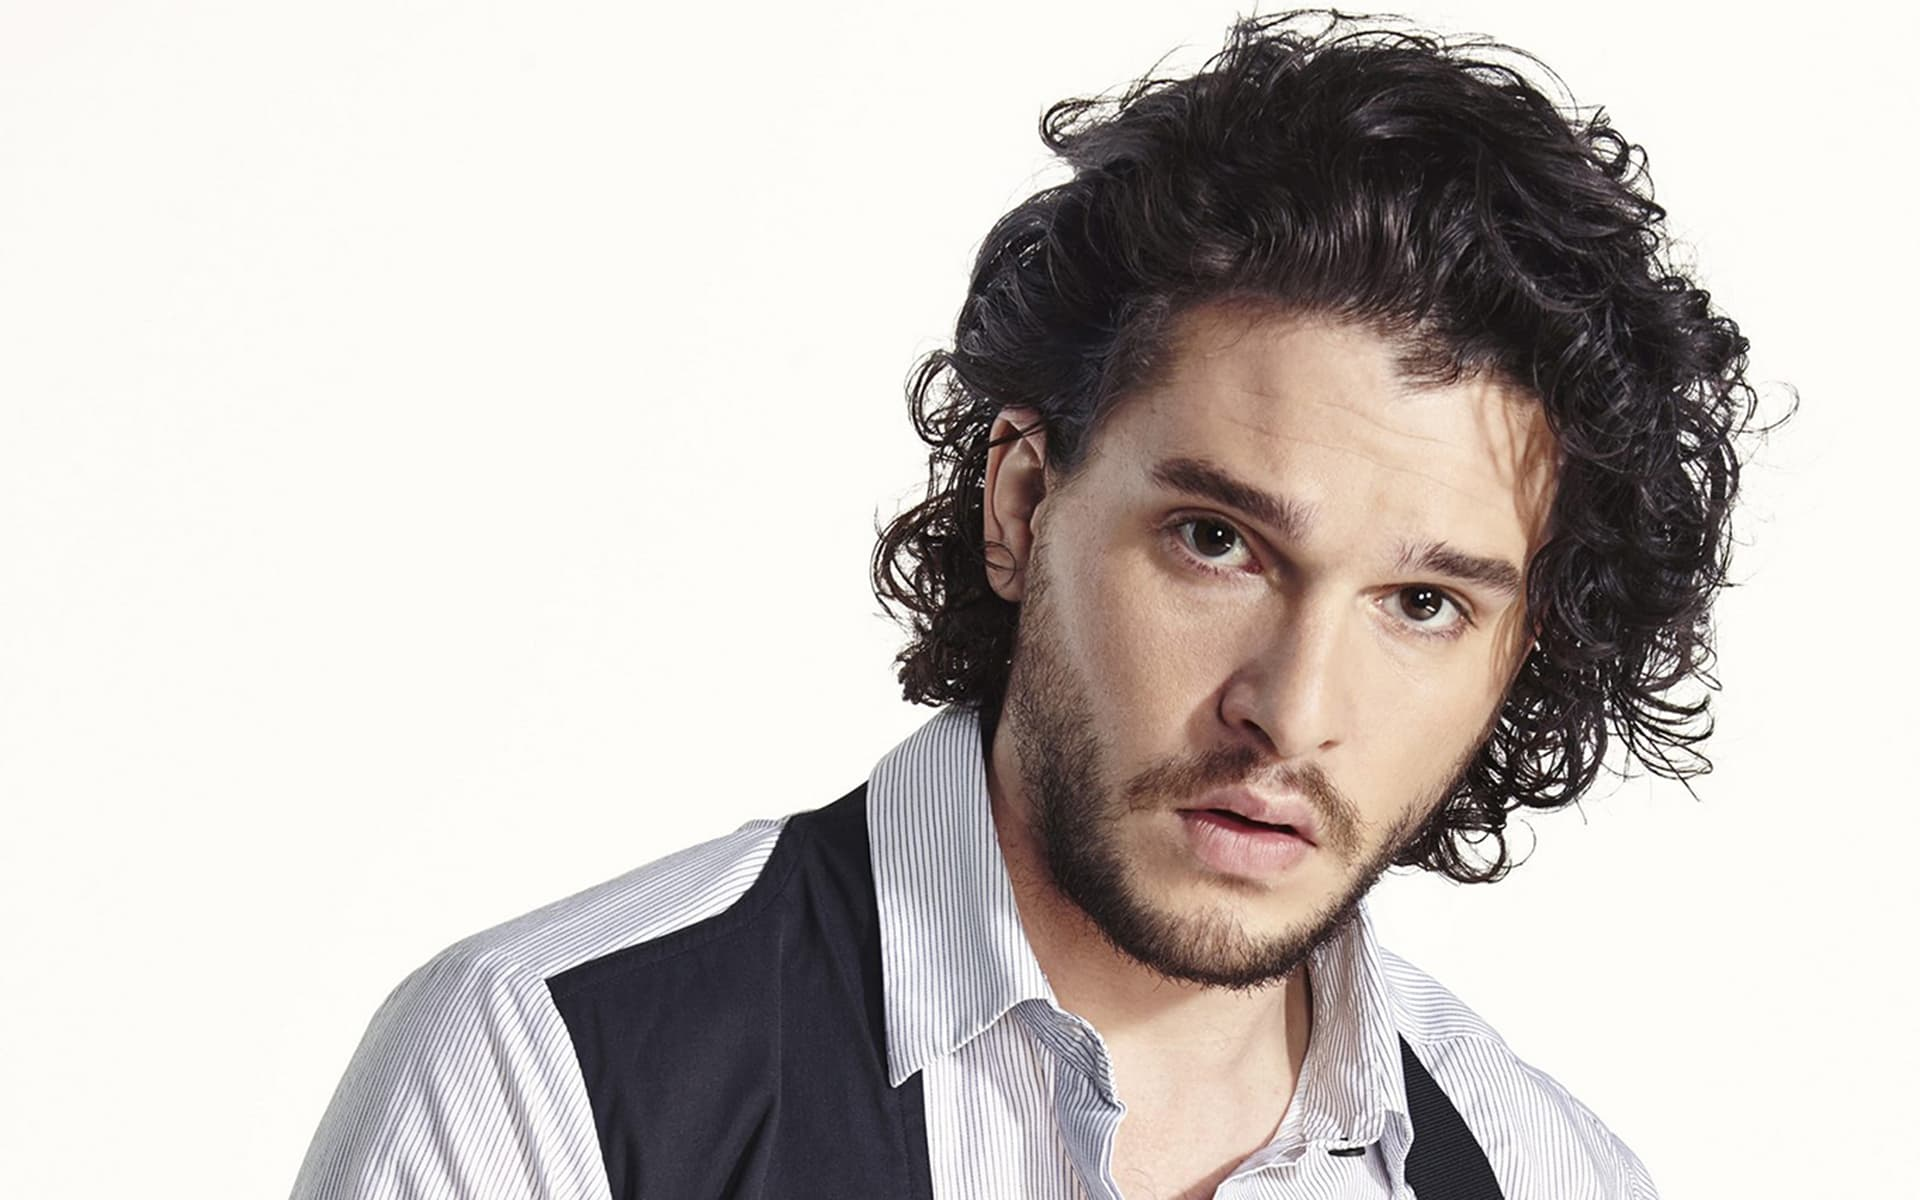 Kit Harington hair wallpaper 1080p High Definition